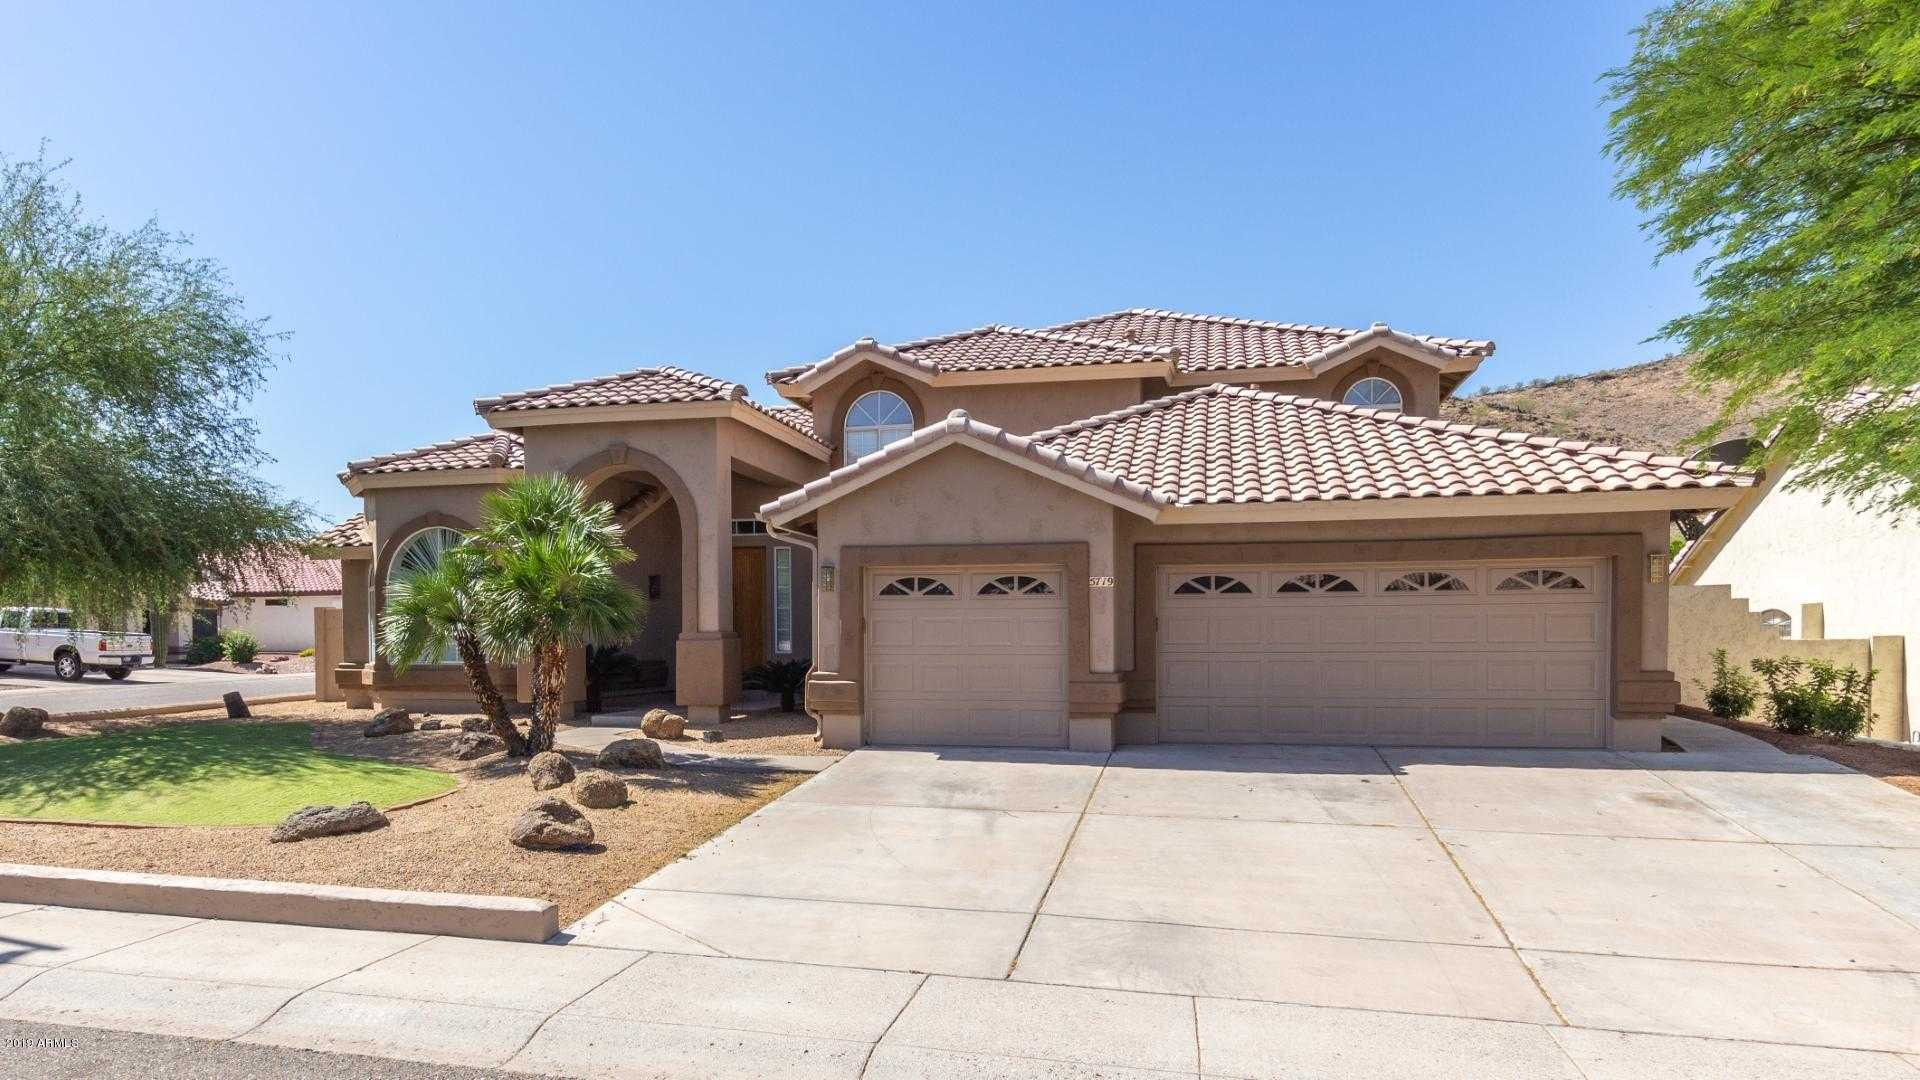 $449,900 - 4Br/3Ba - Home for Sale in Pinnacle Hill Lot 1-259 Tr A-o, Glendale